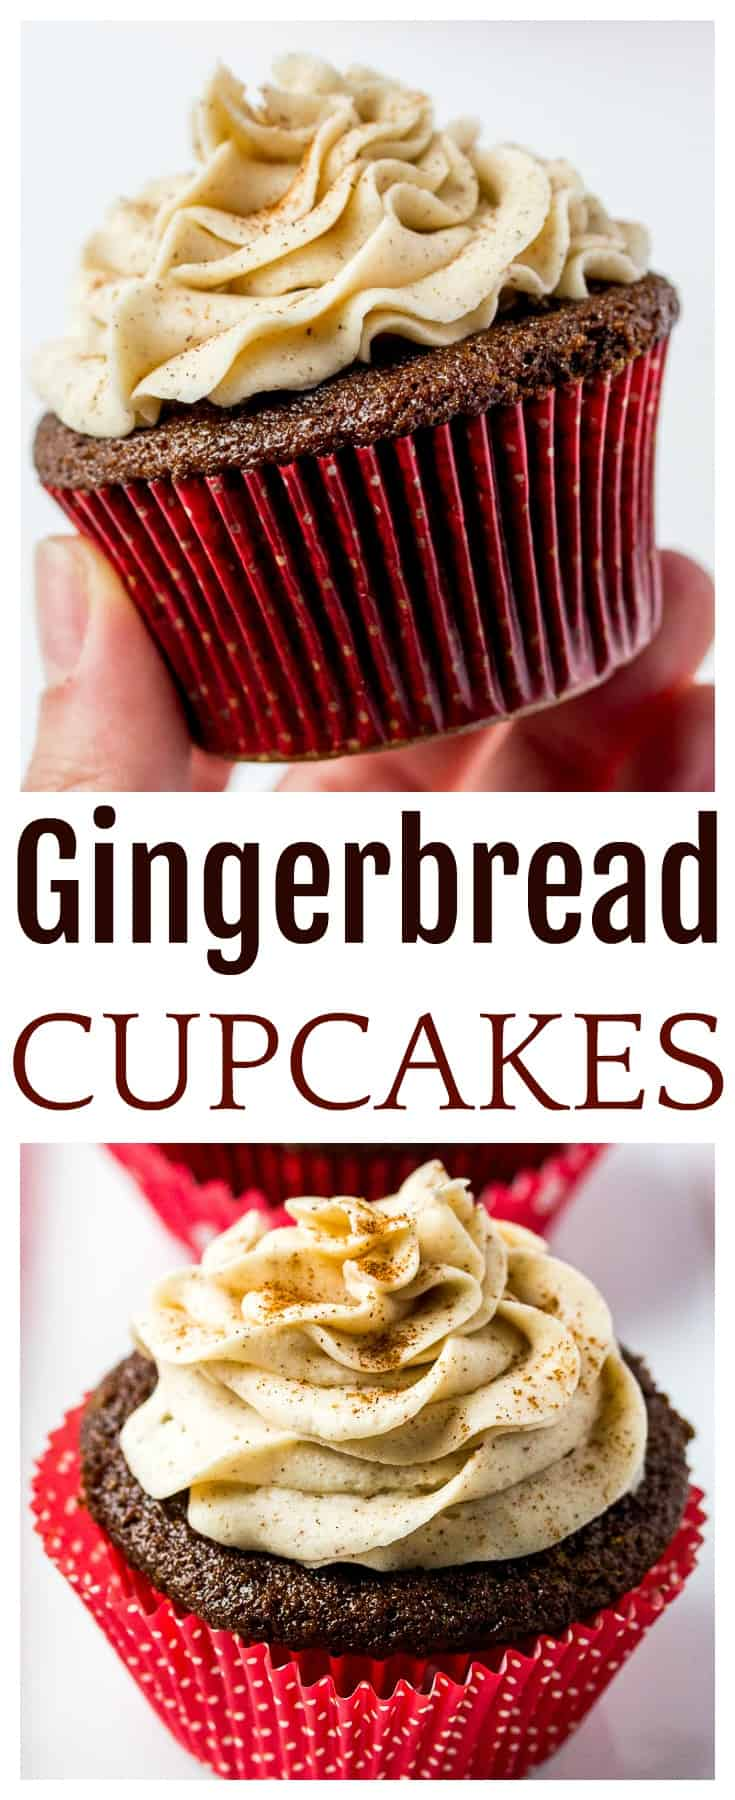 Gingerbread Cupcakes with Cinnamon Vanilla Buttercream Frosting - an easy recipe to bring the best nostalgic, classic taste to the dessert table this Christmas holiday season! Made with molasses and spices, these cupcakes are sure to delight! | #gingerbread #cupcakes